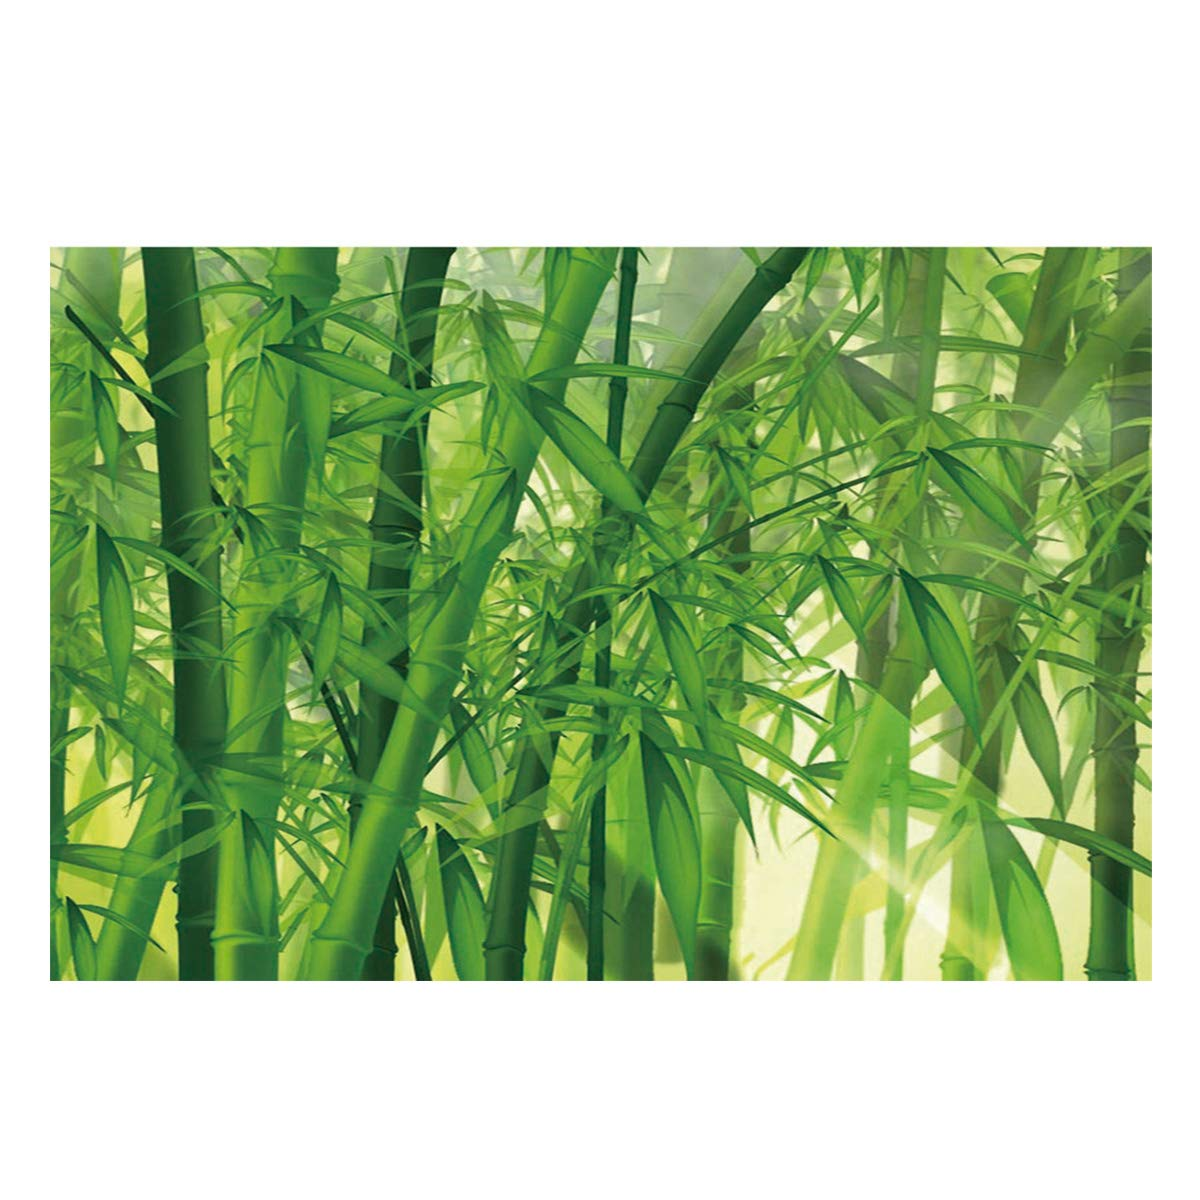 Fantasy Star Aquarium Background Bamboo Forest Fish Tank Wallpaper Easy to Apply and Remove PVC Sticker Pictures Poster Background Decoration 18.4'' x 48.8'' by Fantasy Star